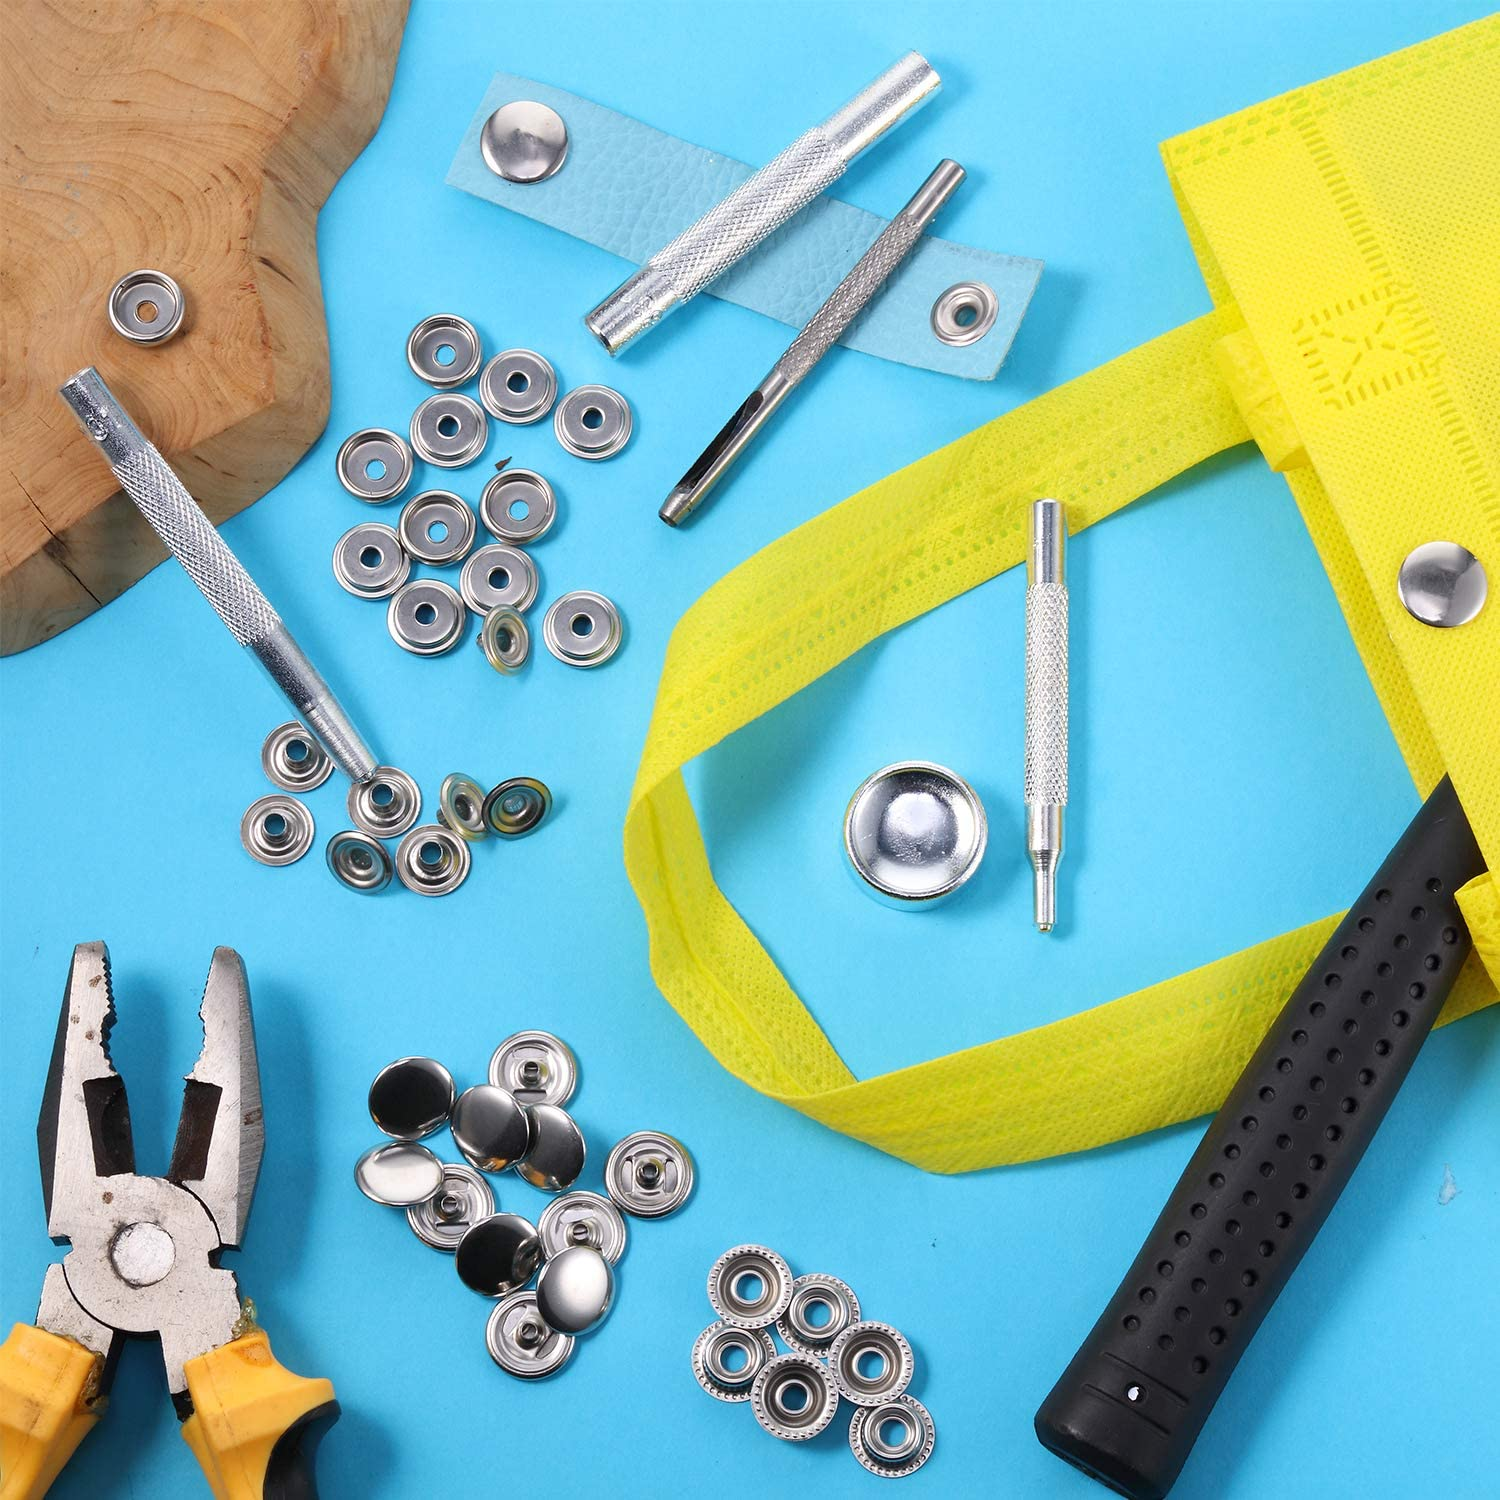 300 Pieces 15mm Stainless Steel Fastener Snap Press Stud Button with 5 Pieces Punching Tools Kit for Marine Boat Canvas Leather Craft Sewing 4 Components